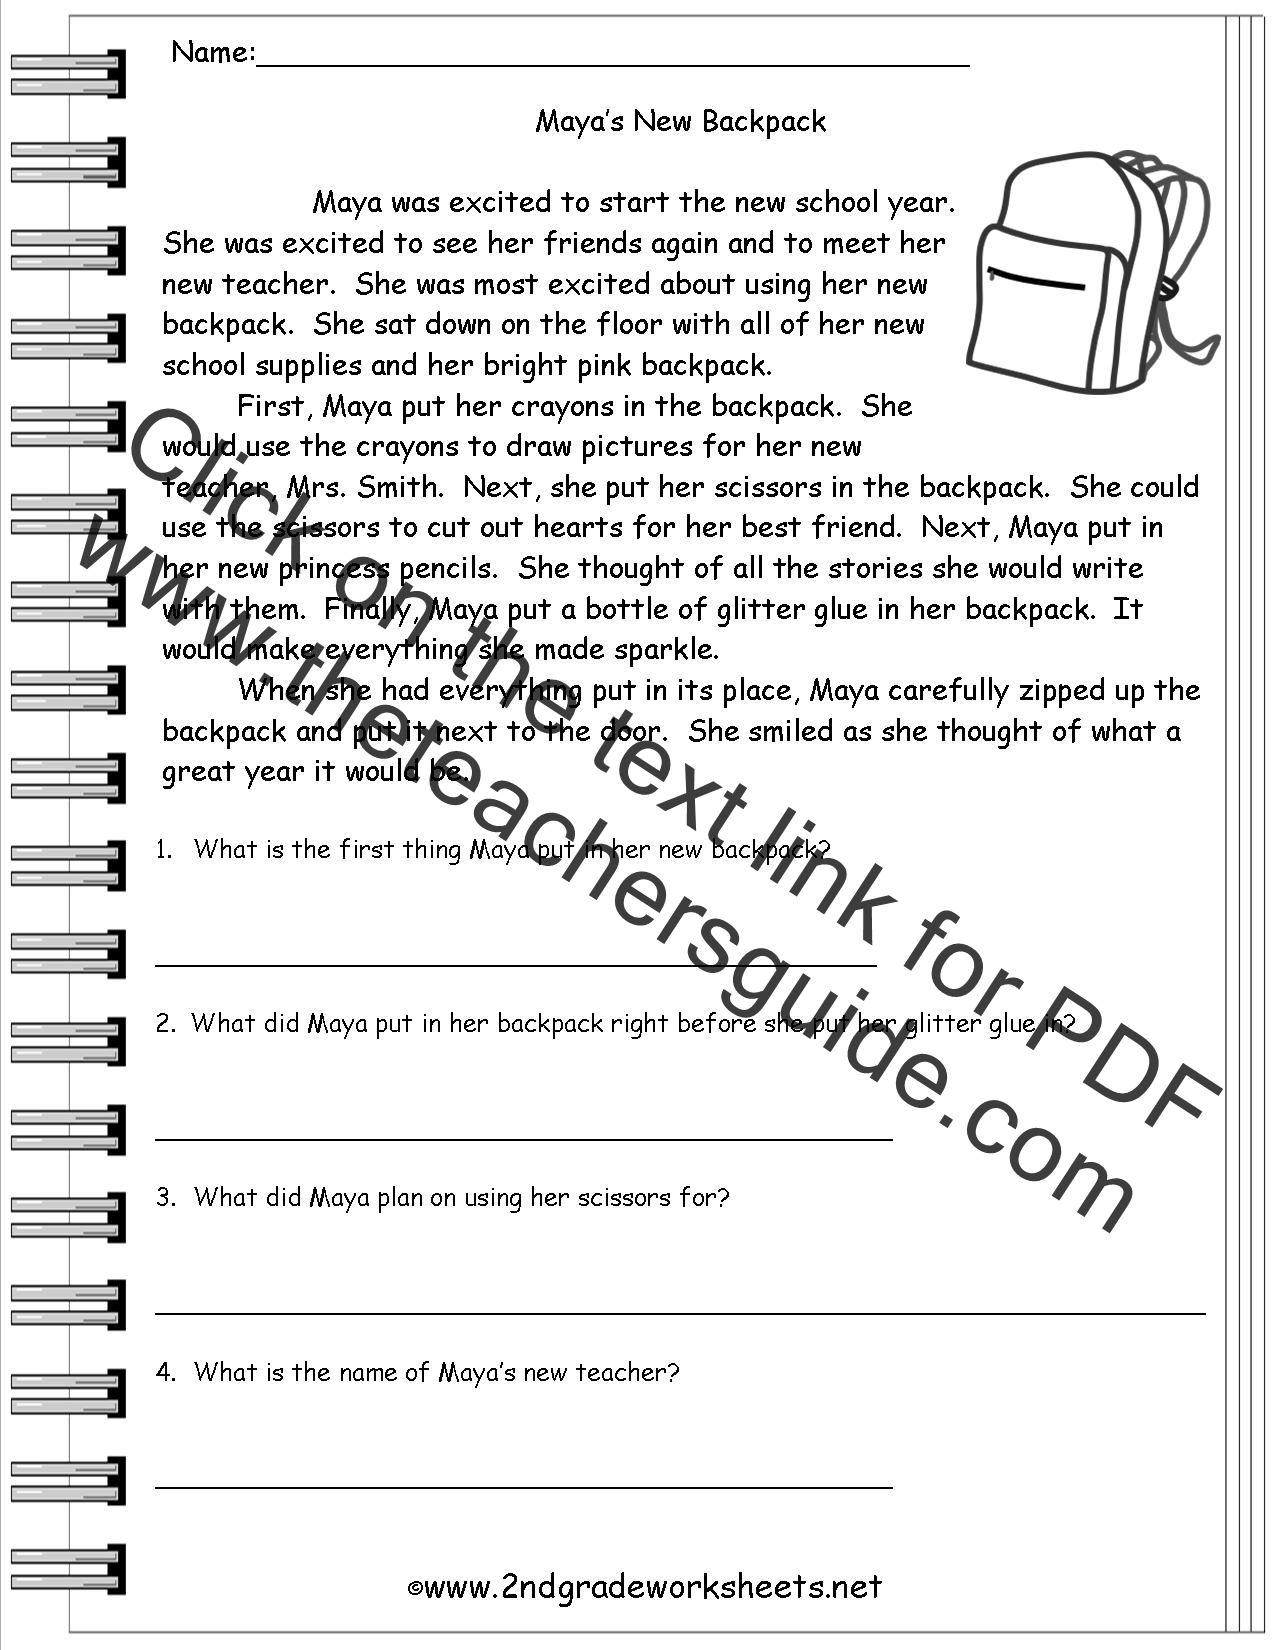 Reading Worksheeets – Free 5th Grade Reading Comprehension Worksheets